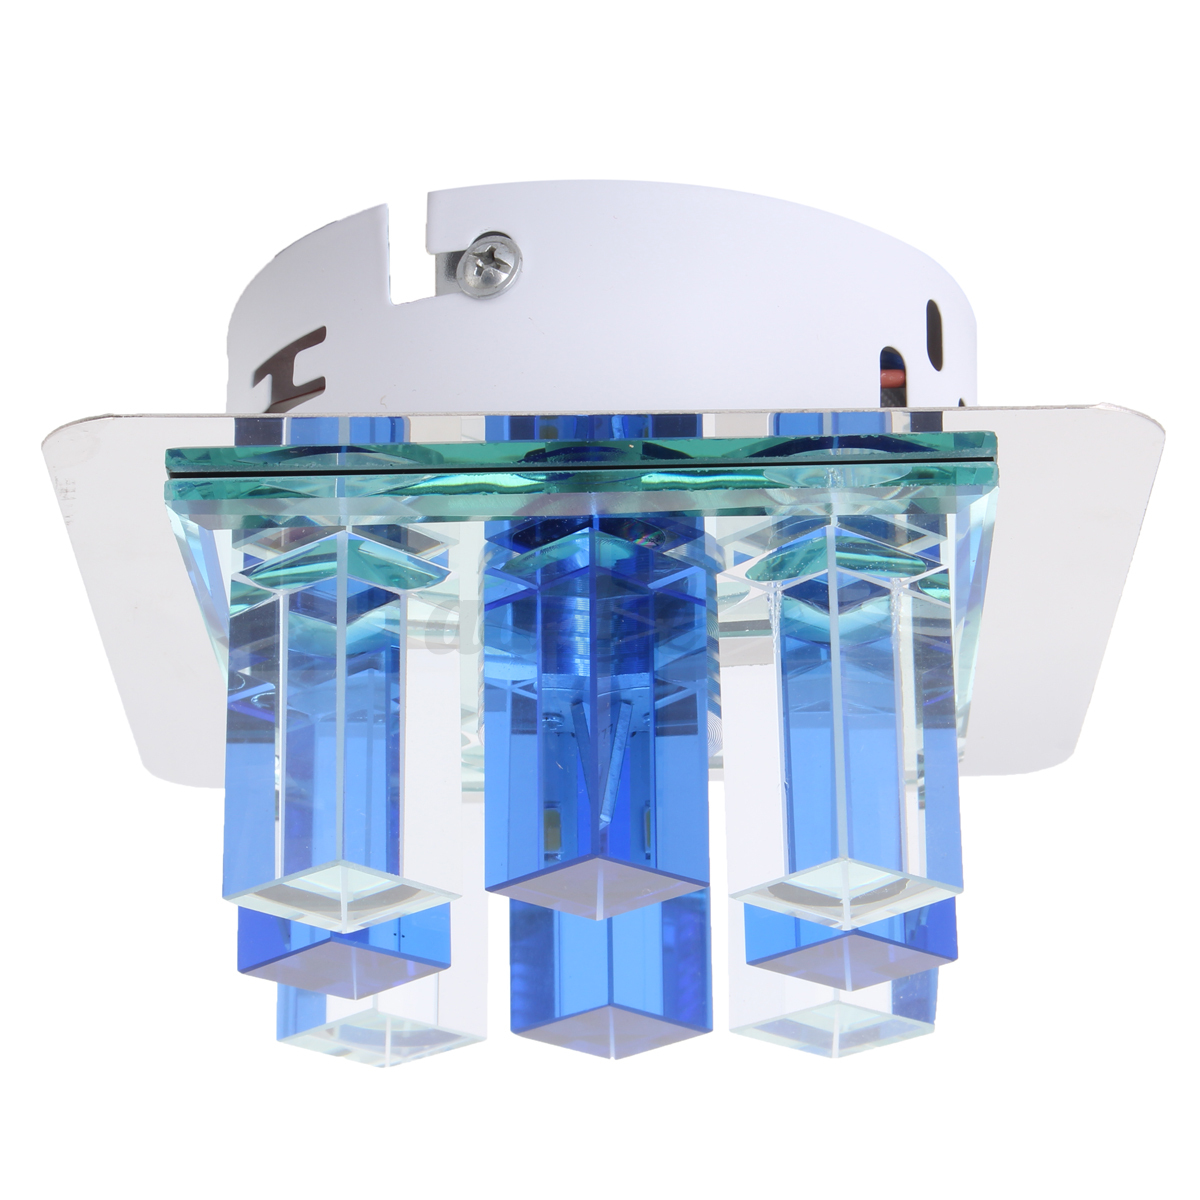 3W-Crystal-LED-Modern-Ceiling-Light-Fixture-Pendant-Lamp-Chandelier-Lighting